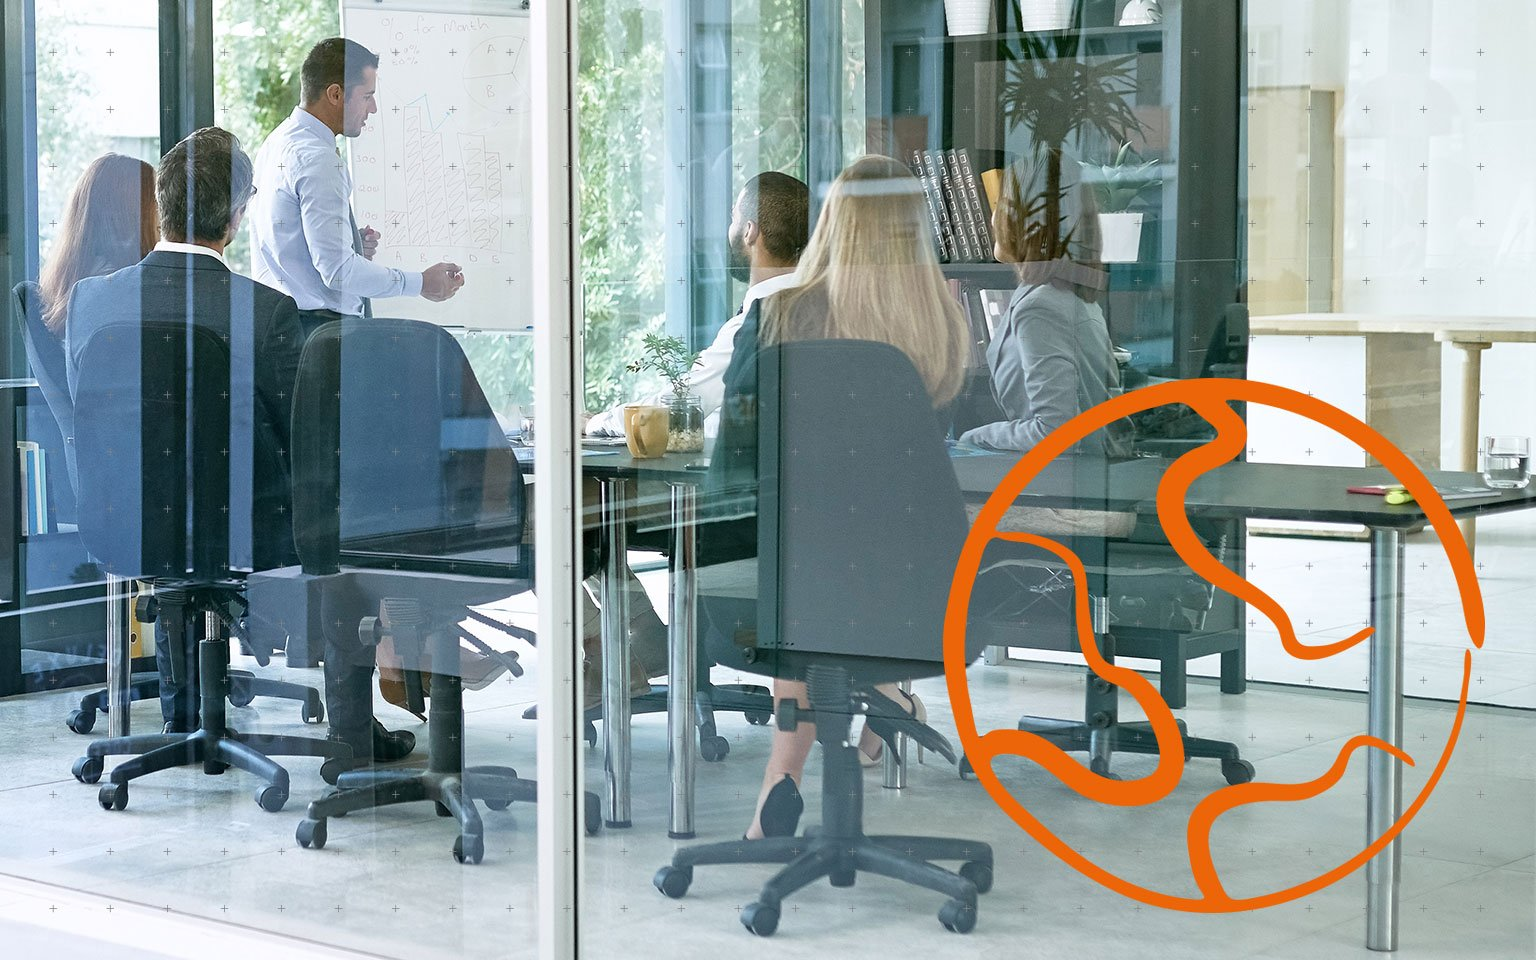 workers in a glass meeting room